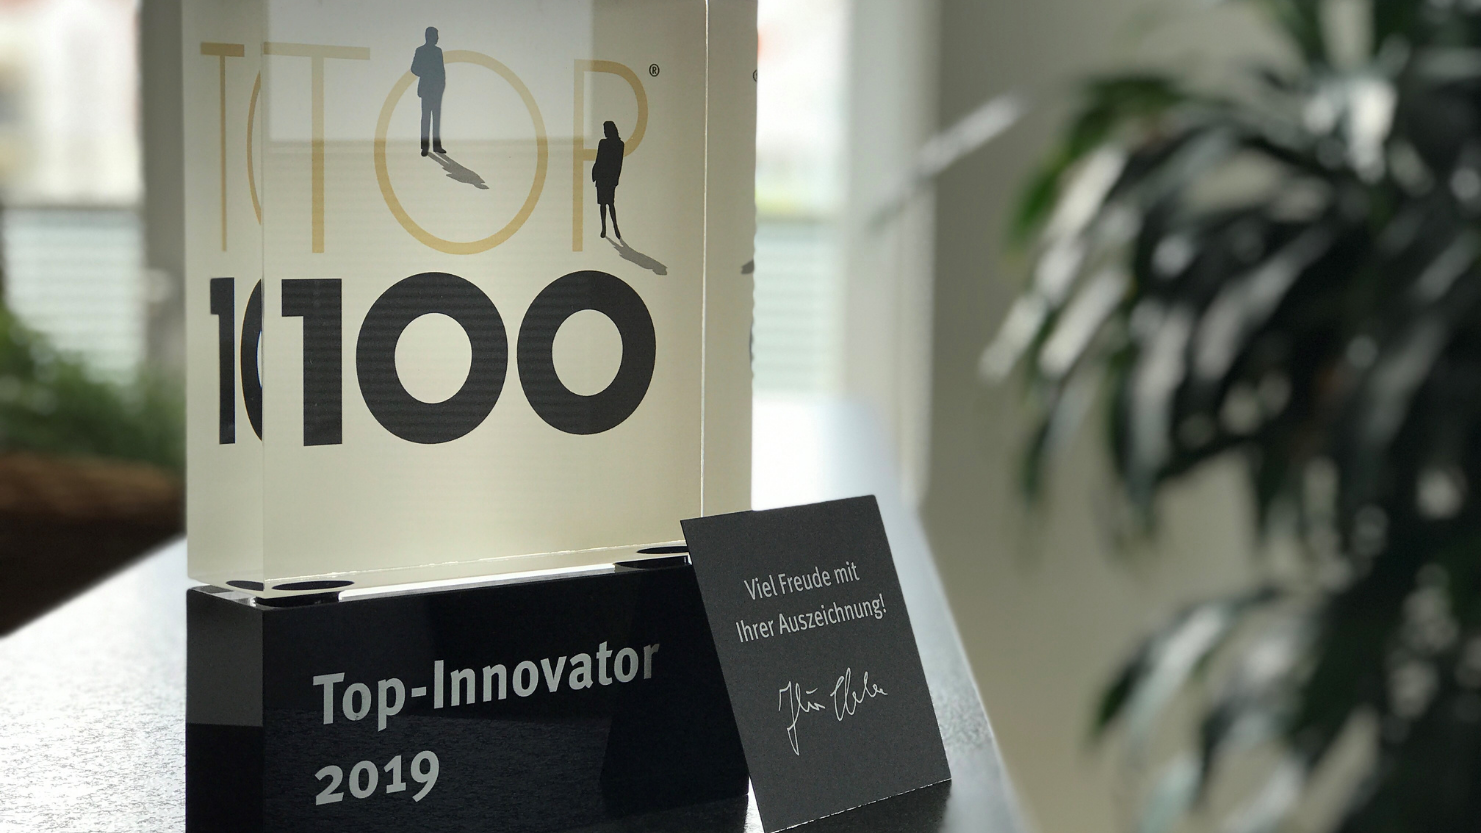 opesus was awarded the German Top 100-Innovator Award in 2019